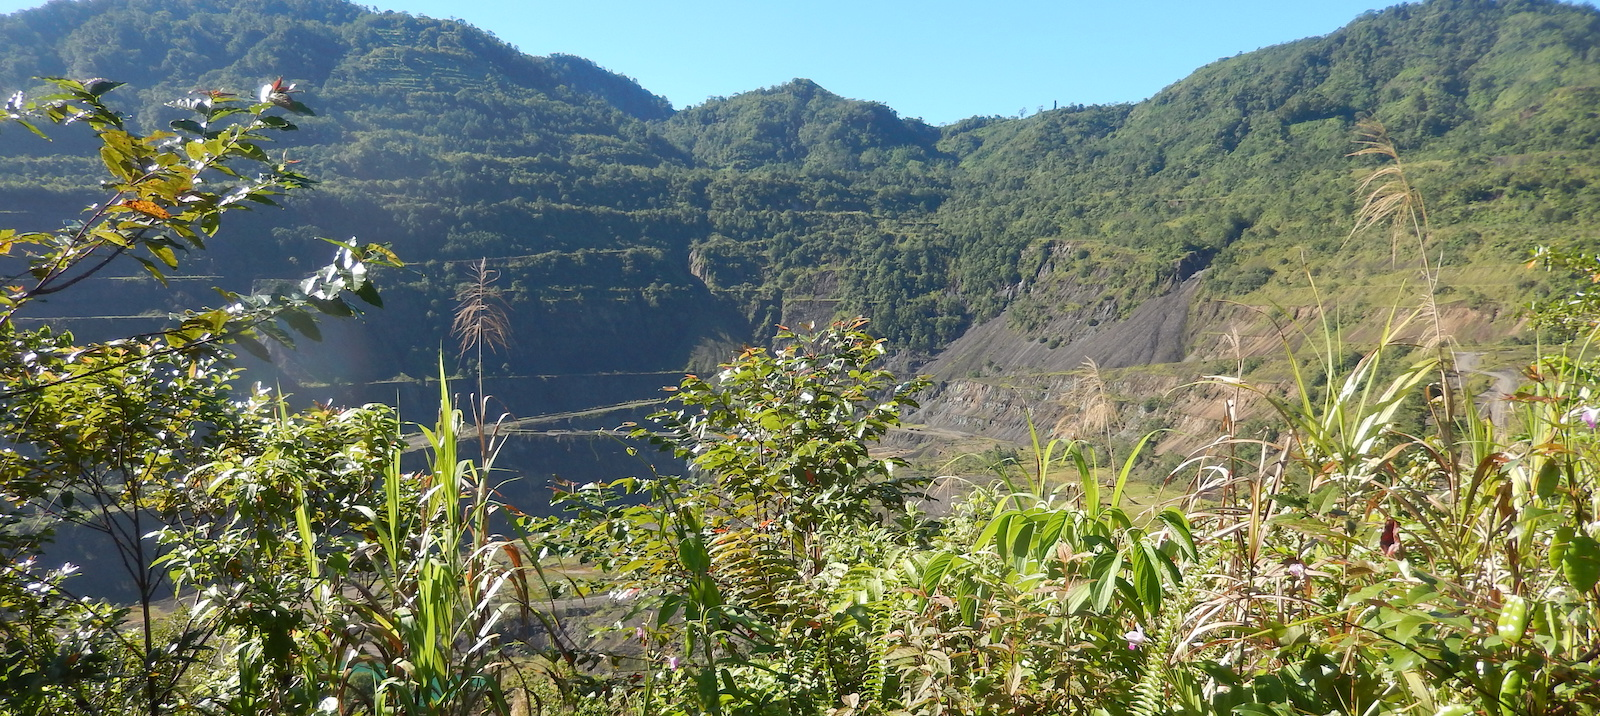 Panguna mine, Bougainville, 2016 (Photo: Annmaree O'Keeffe)